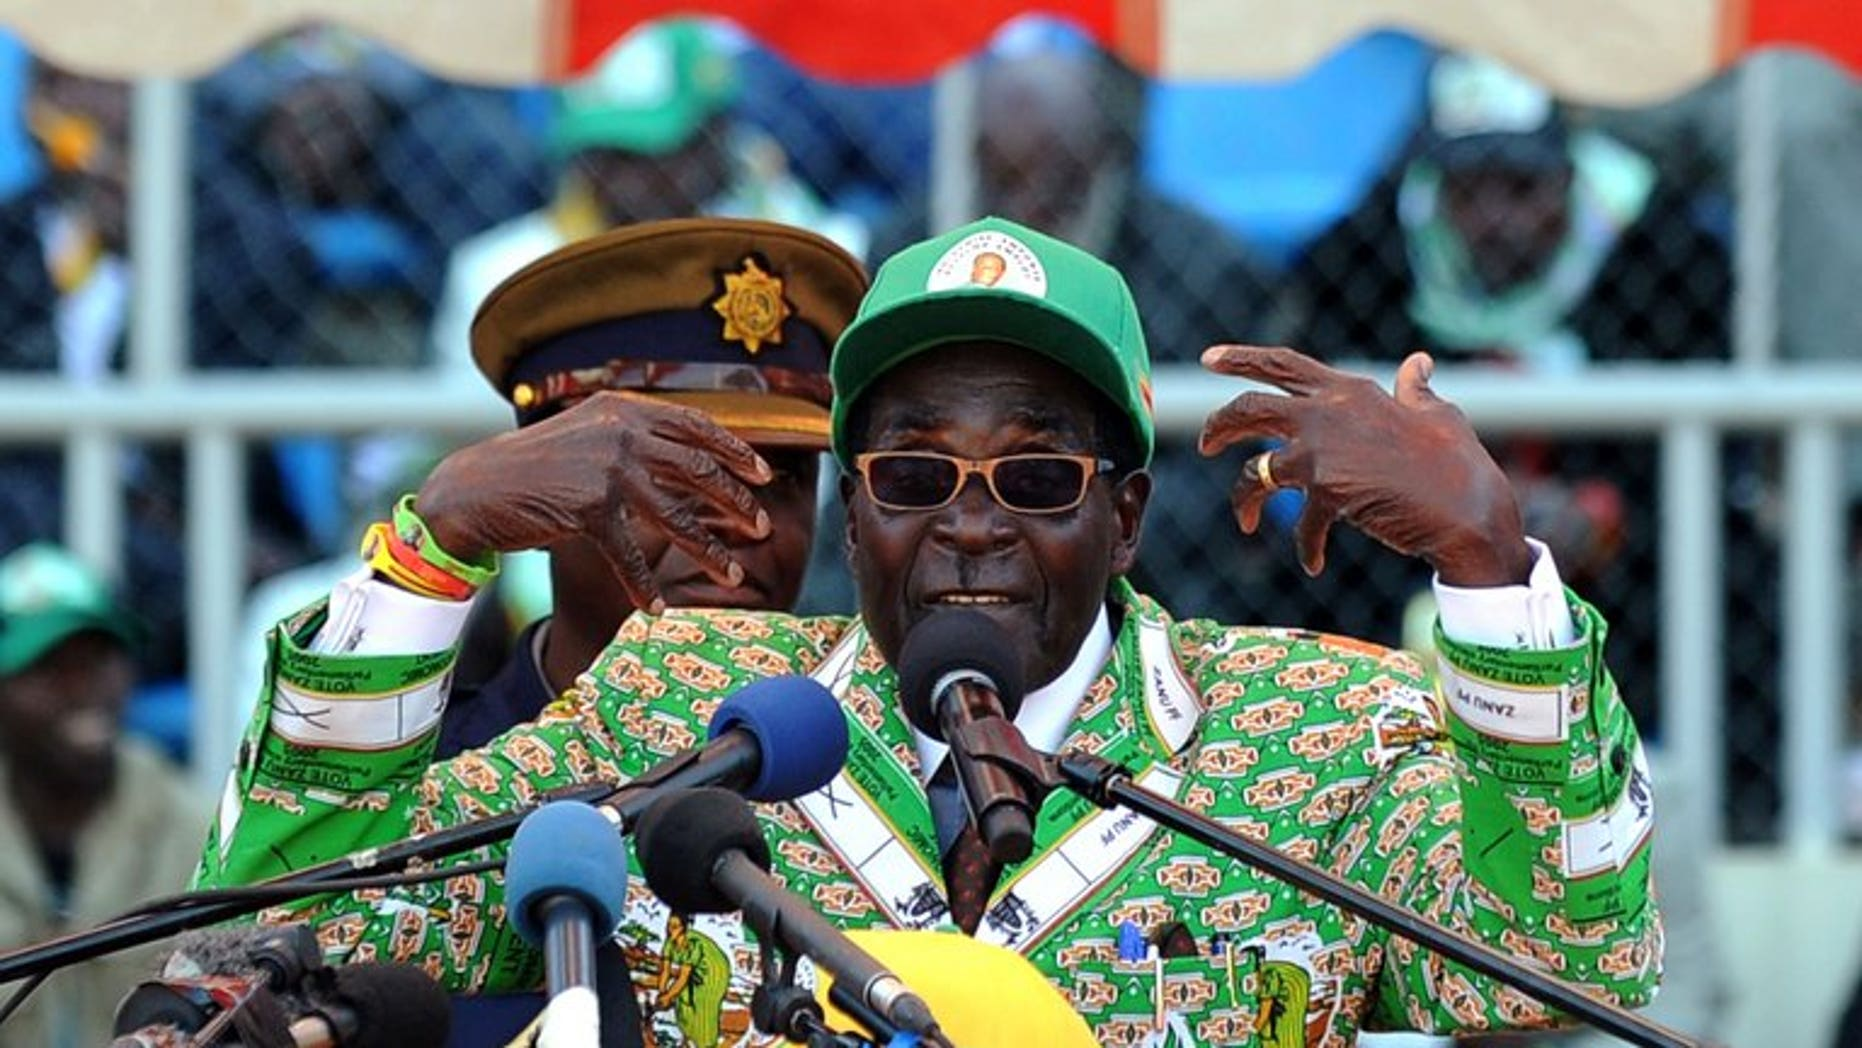 """Zimbabwe's President Robert Mugabe addresses at a rally in Harare on July 28, 2013. Veteran leader Robert Mugabe was sworn in as Zimbabwe's president for another five-year term before a stadium packed with thousands of jubilant supporters Thursday. Mugabe, 89, pledged """"to observe, uphold and defend the constitution of Zimbabwe"""" in an oath administered by Chief Justice Godfrey Chidyausiku."""